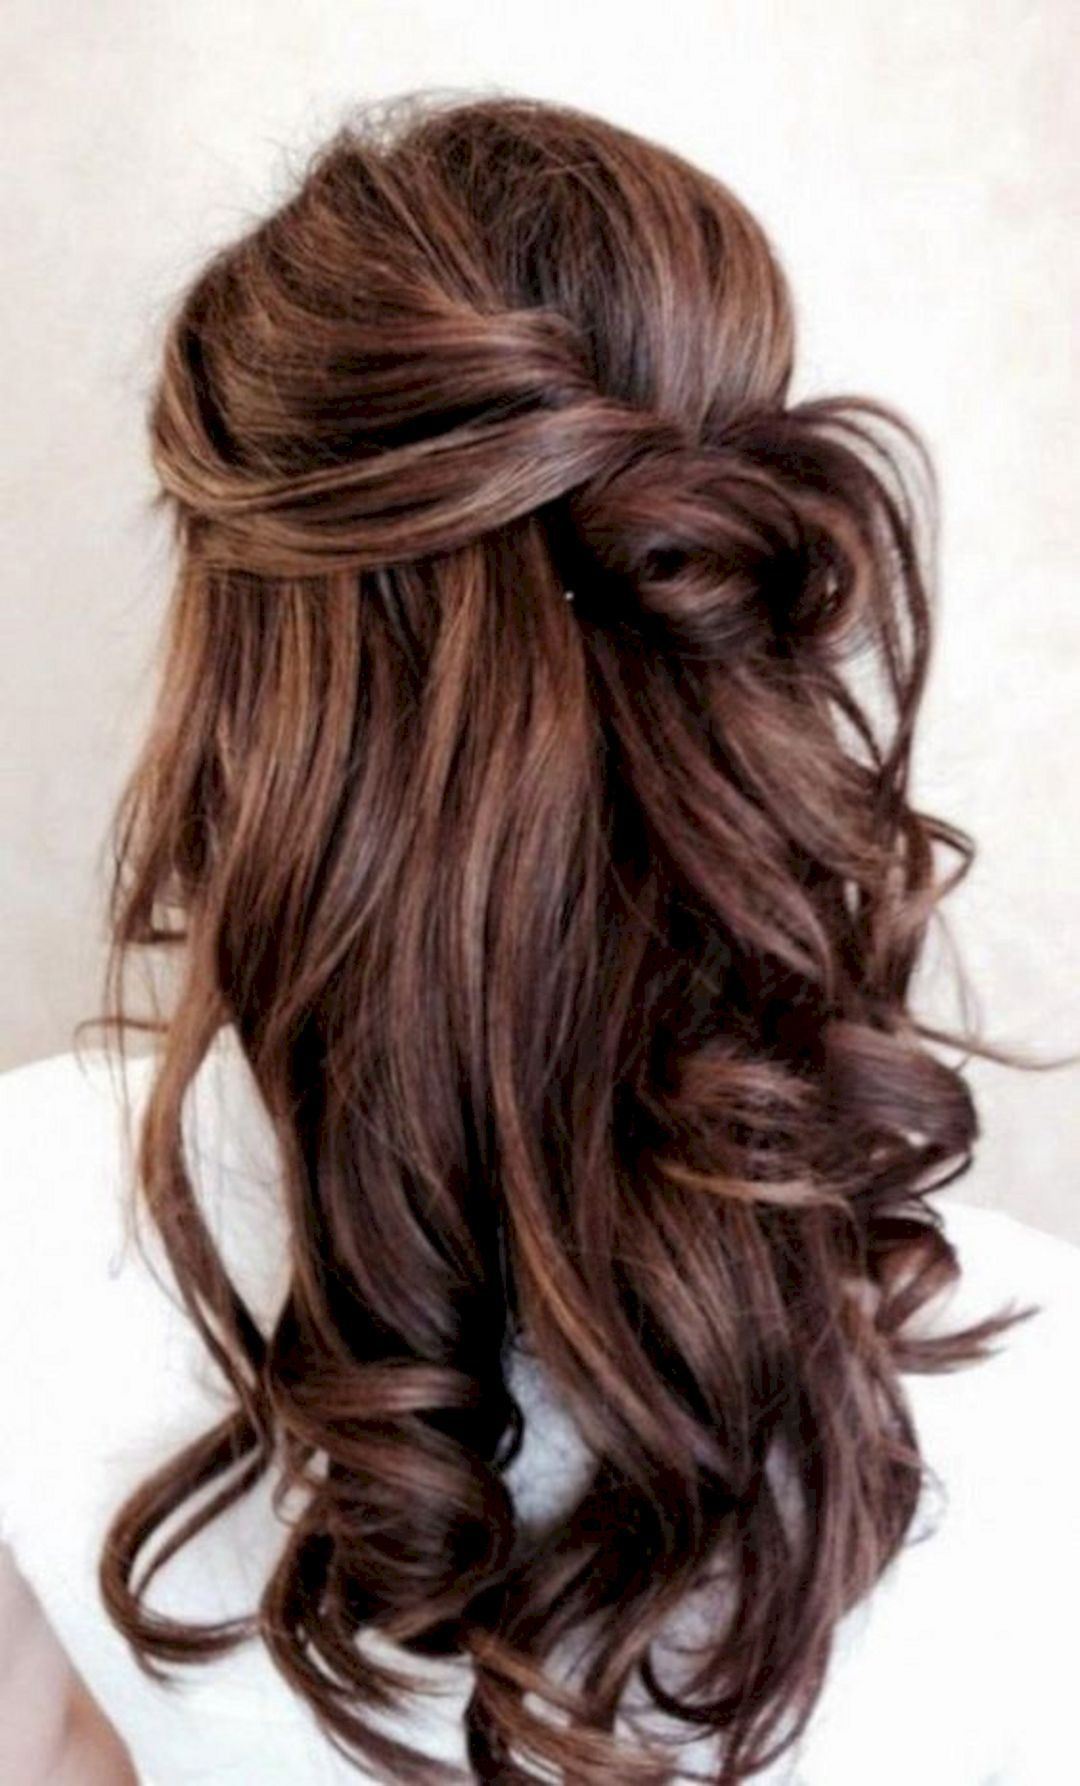 Stunning Half Up Down Wedding Hairstyles Ideas No 76 Oosile Weddinghairstyles